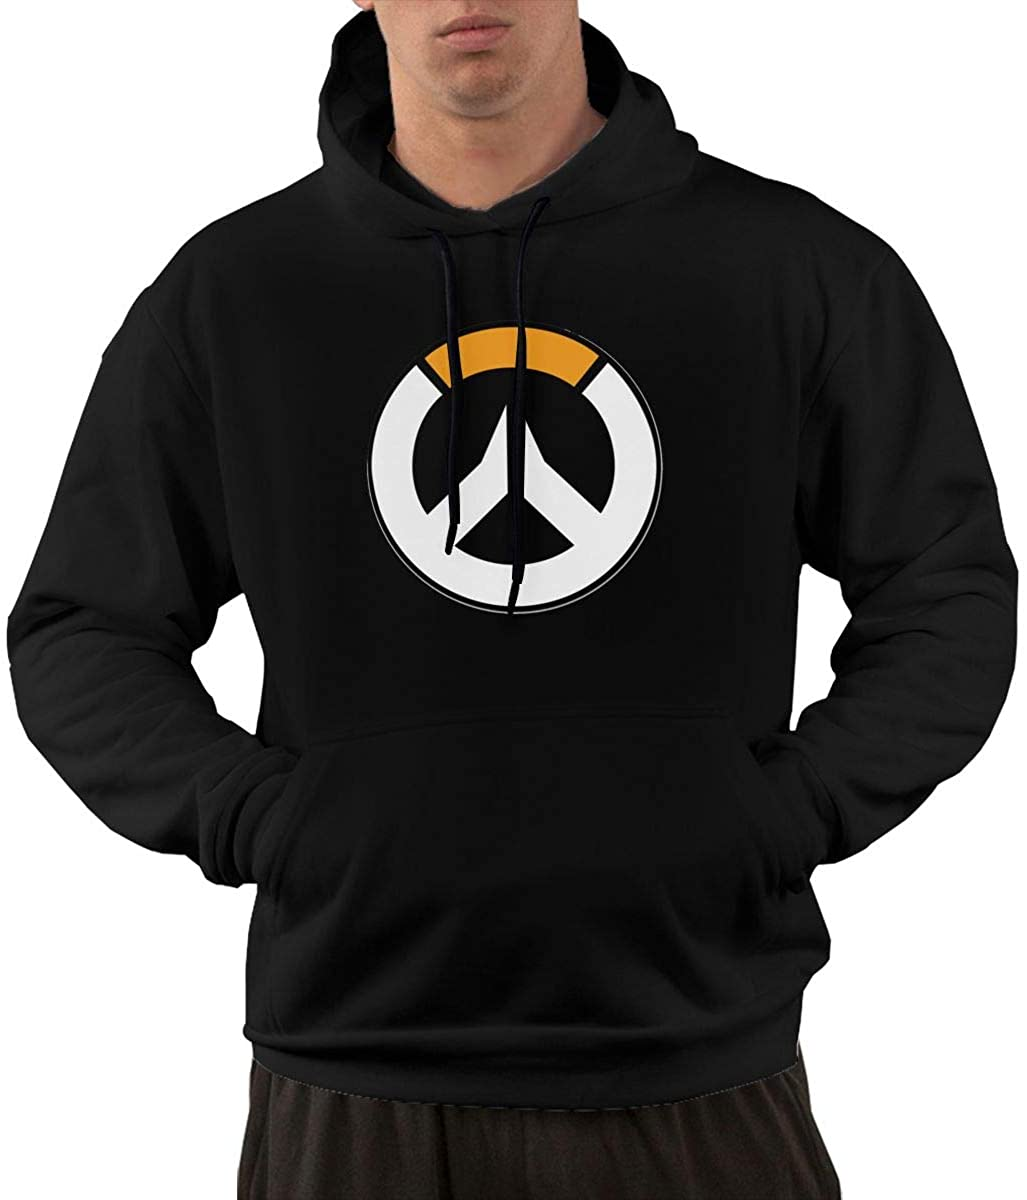 wadvsngdan Sdfcvxkhl Ove-Rwa-Tch Polyester Cotton Fabric Mens Hoodie Handsome and Comfortable Black